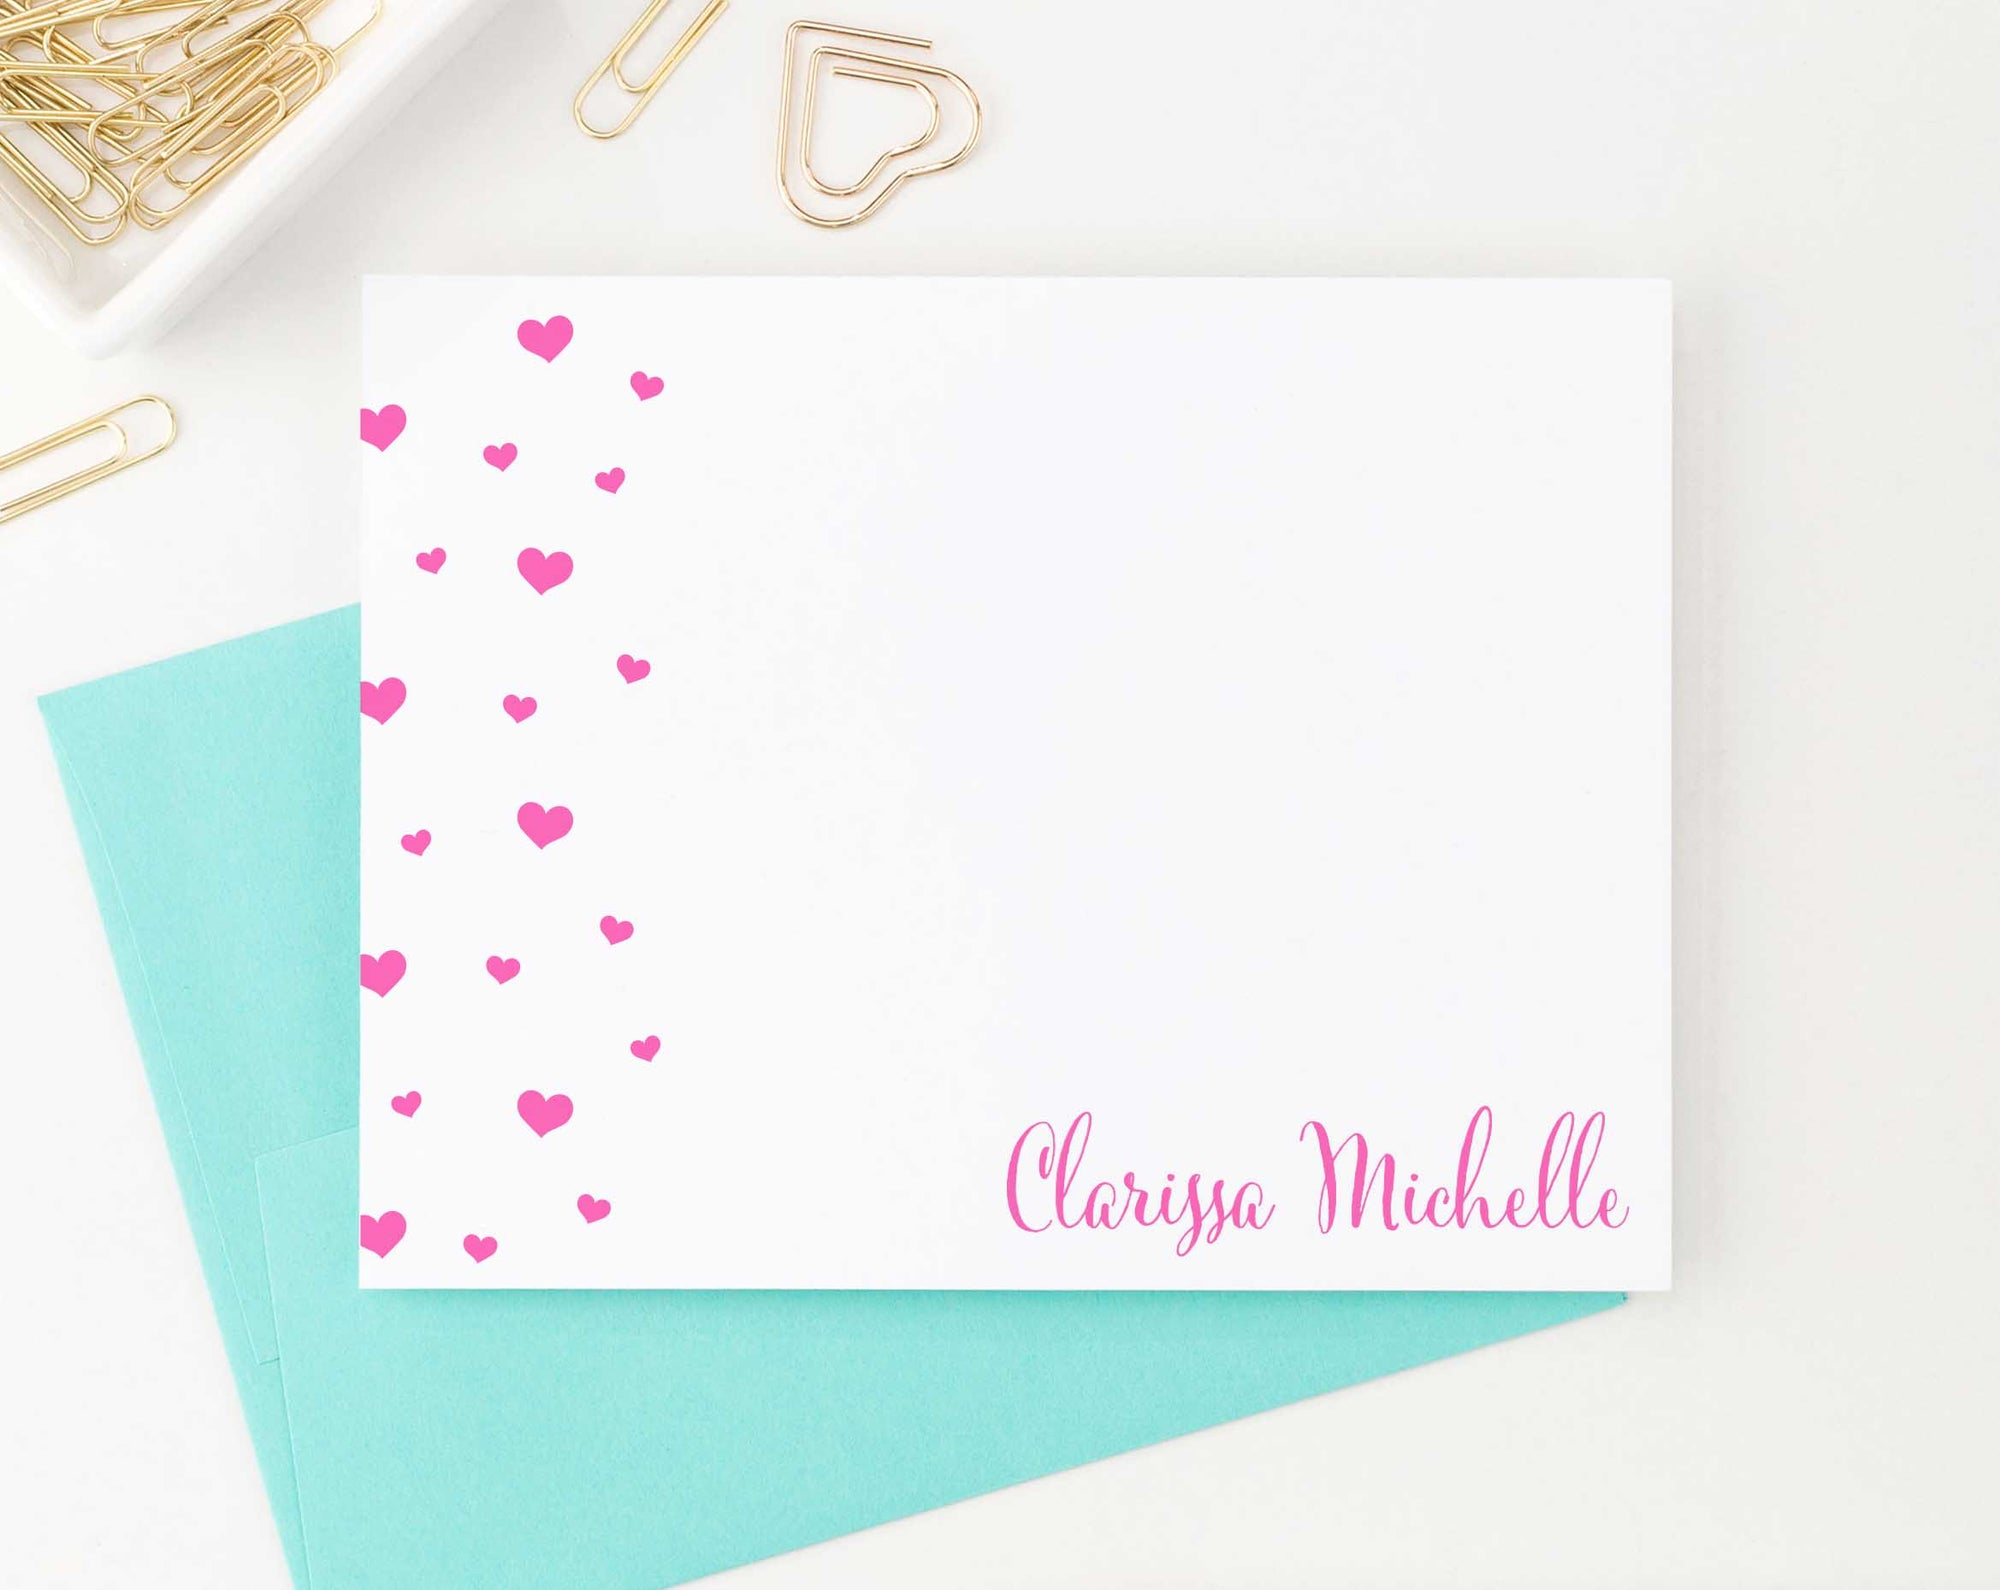 KS149 personalized name and heart stationery set for girls girl kids elegant cute 3